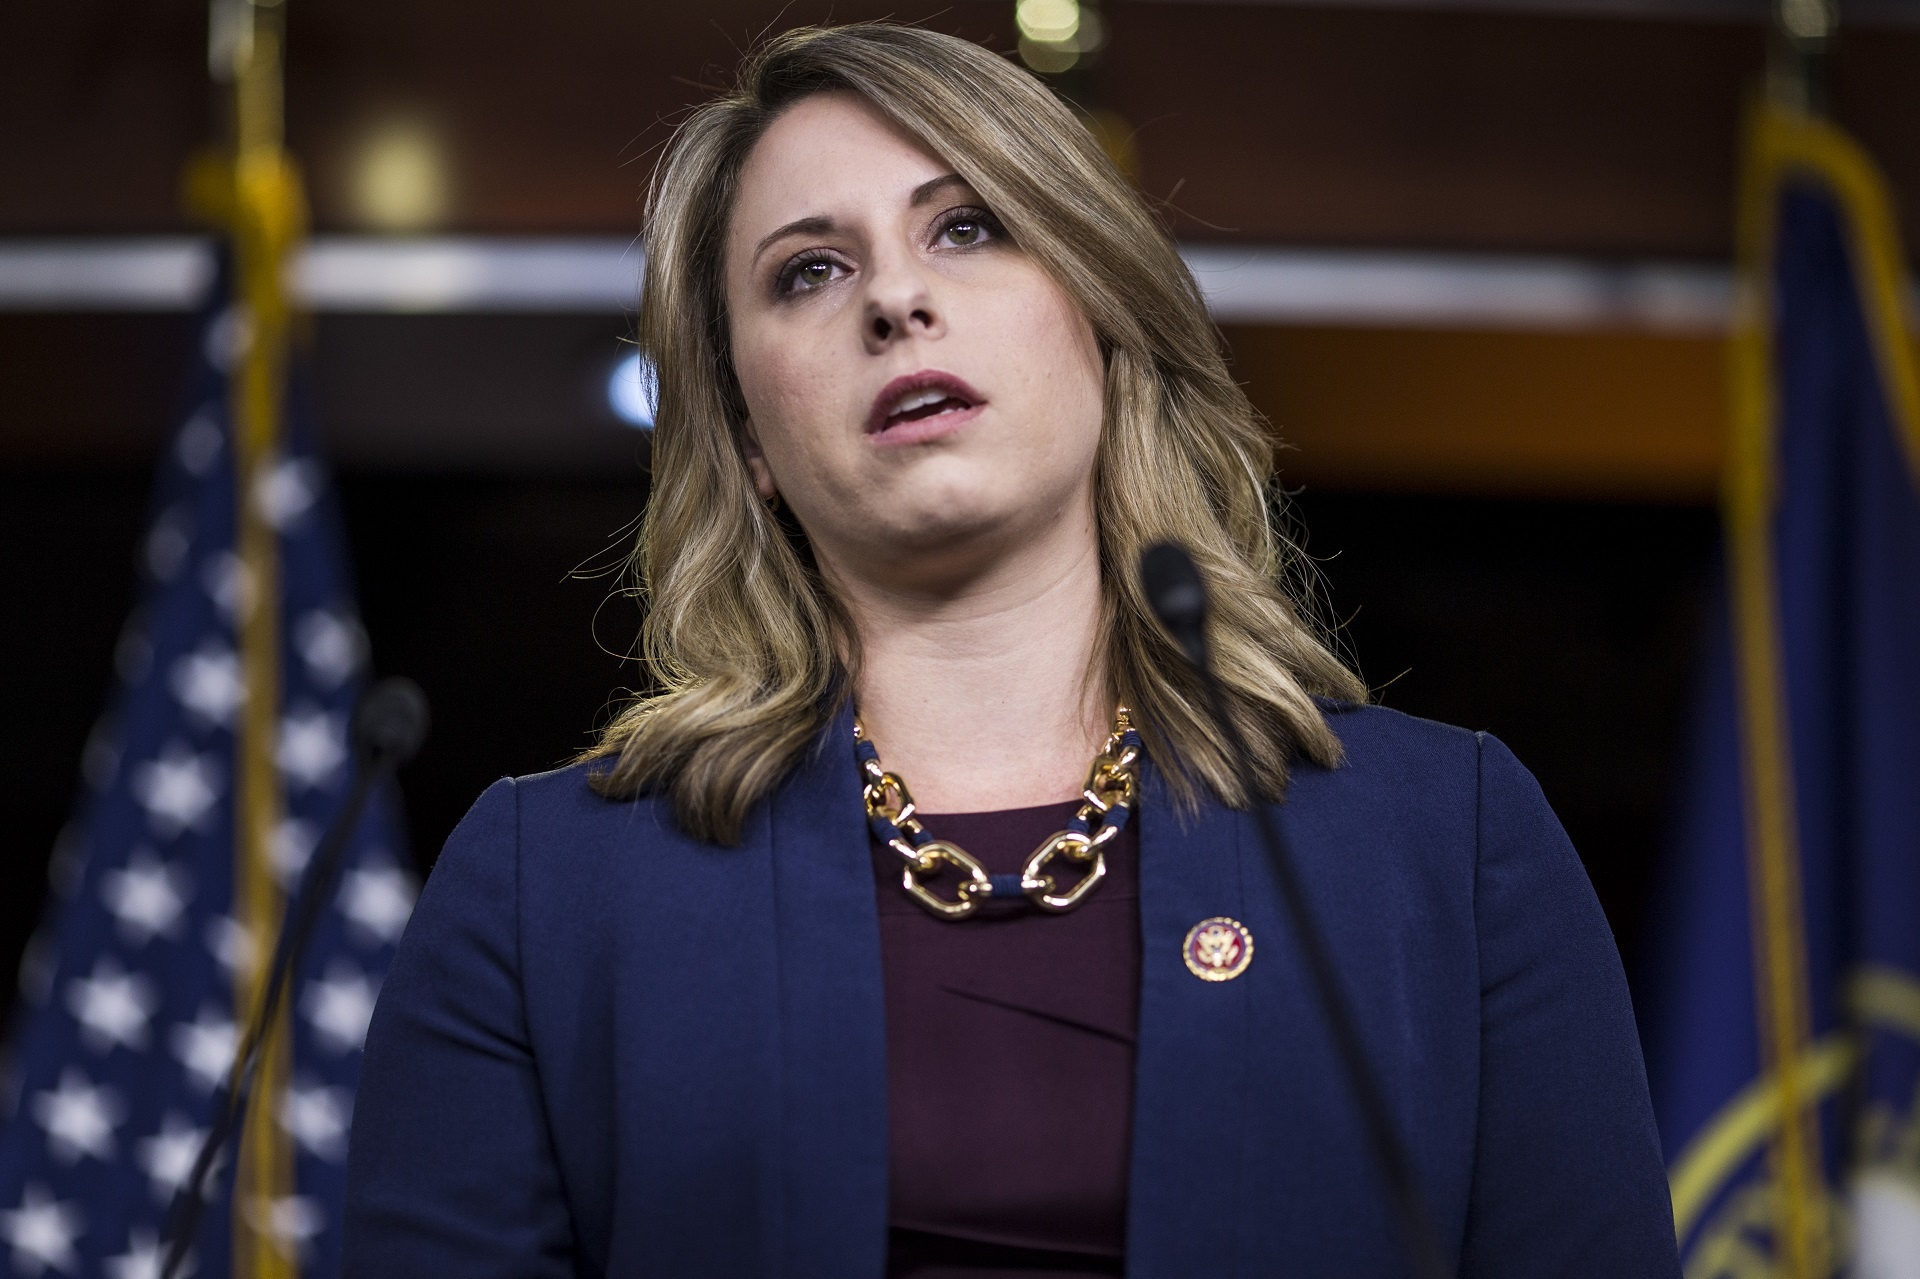 Dem ex-Rep. Katie Hill says 'rampant biphobia' was a 'huge part' of why she resigned